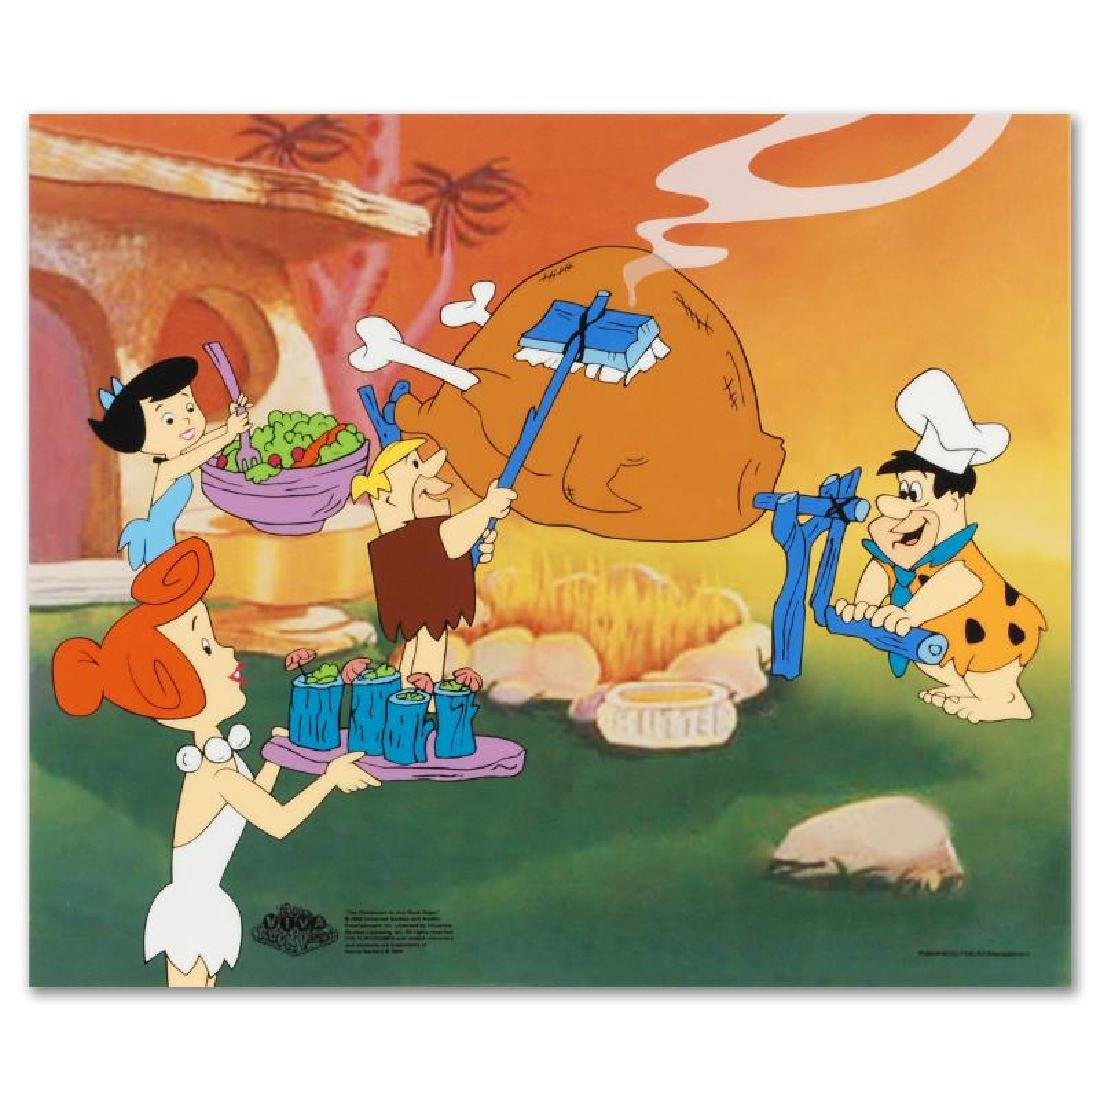 Flintstones Barbecue Limited Edition Sericel from the